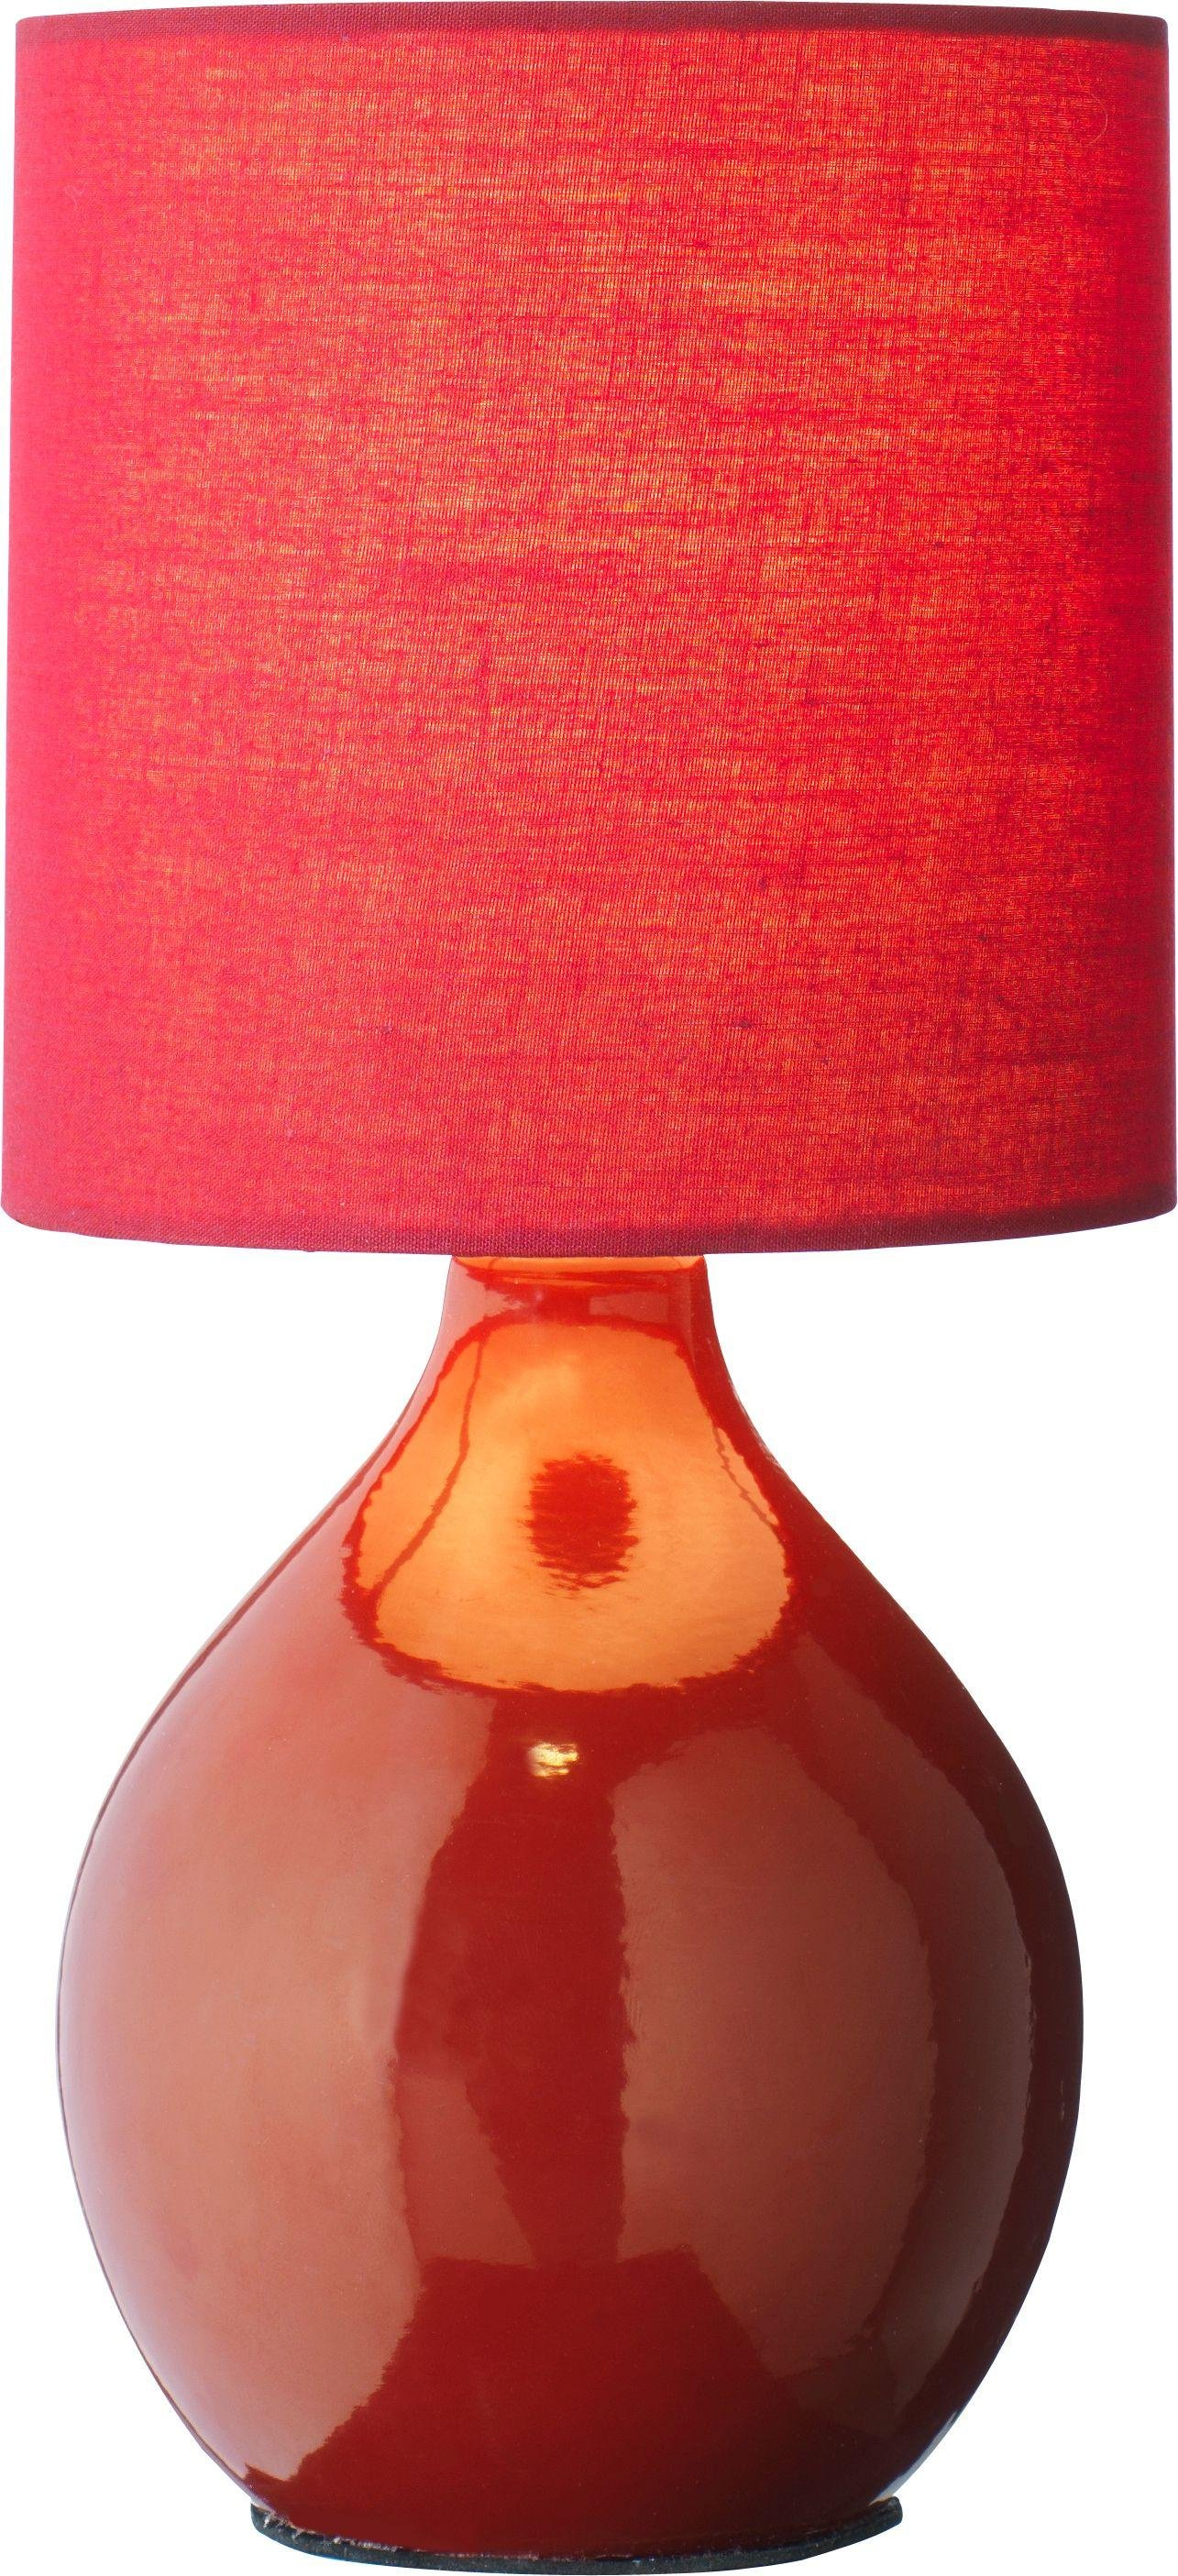 colourmatch round ceramic table lamp  poppy red.